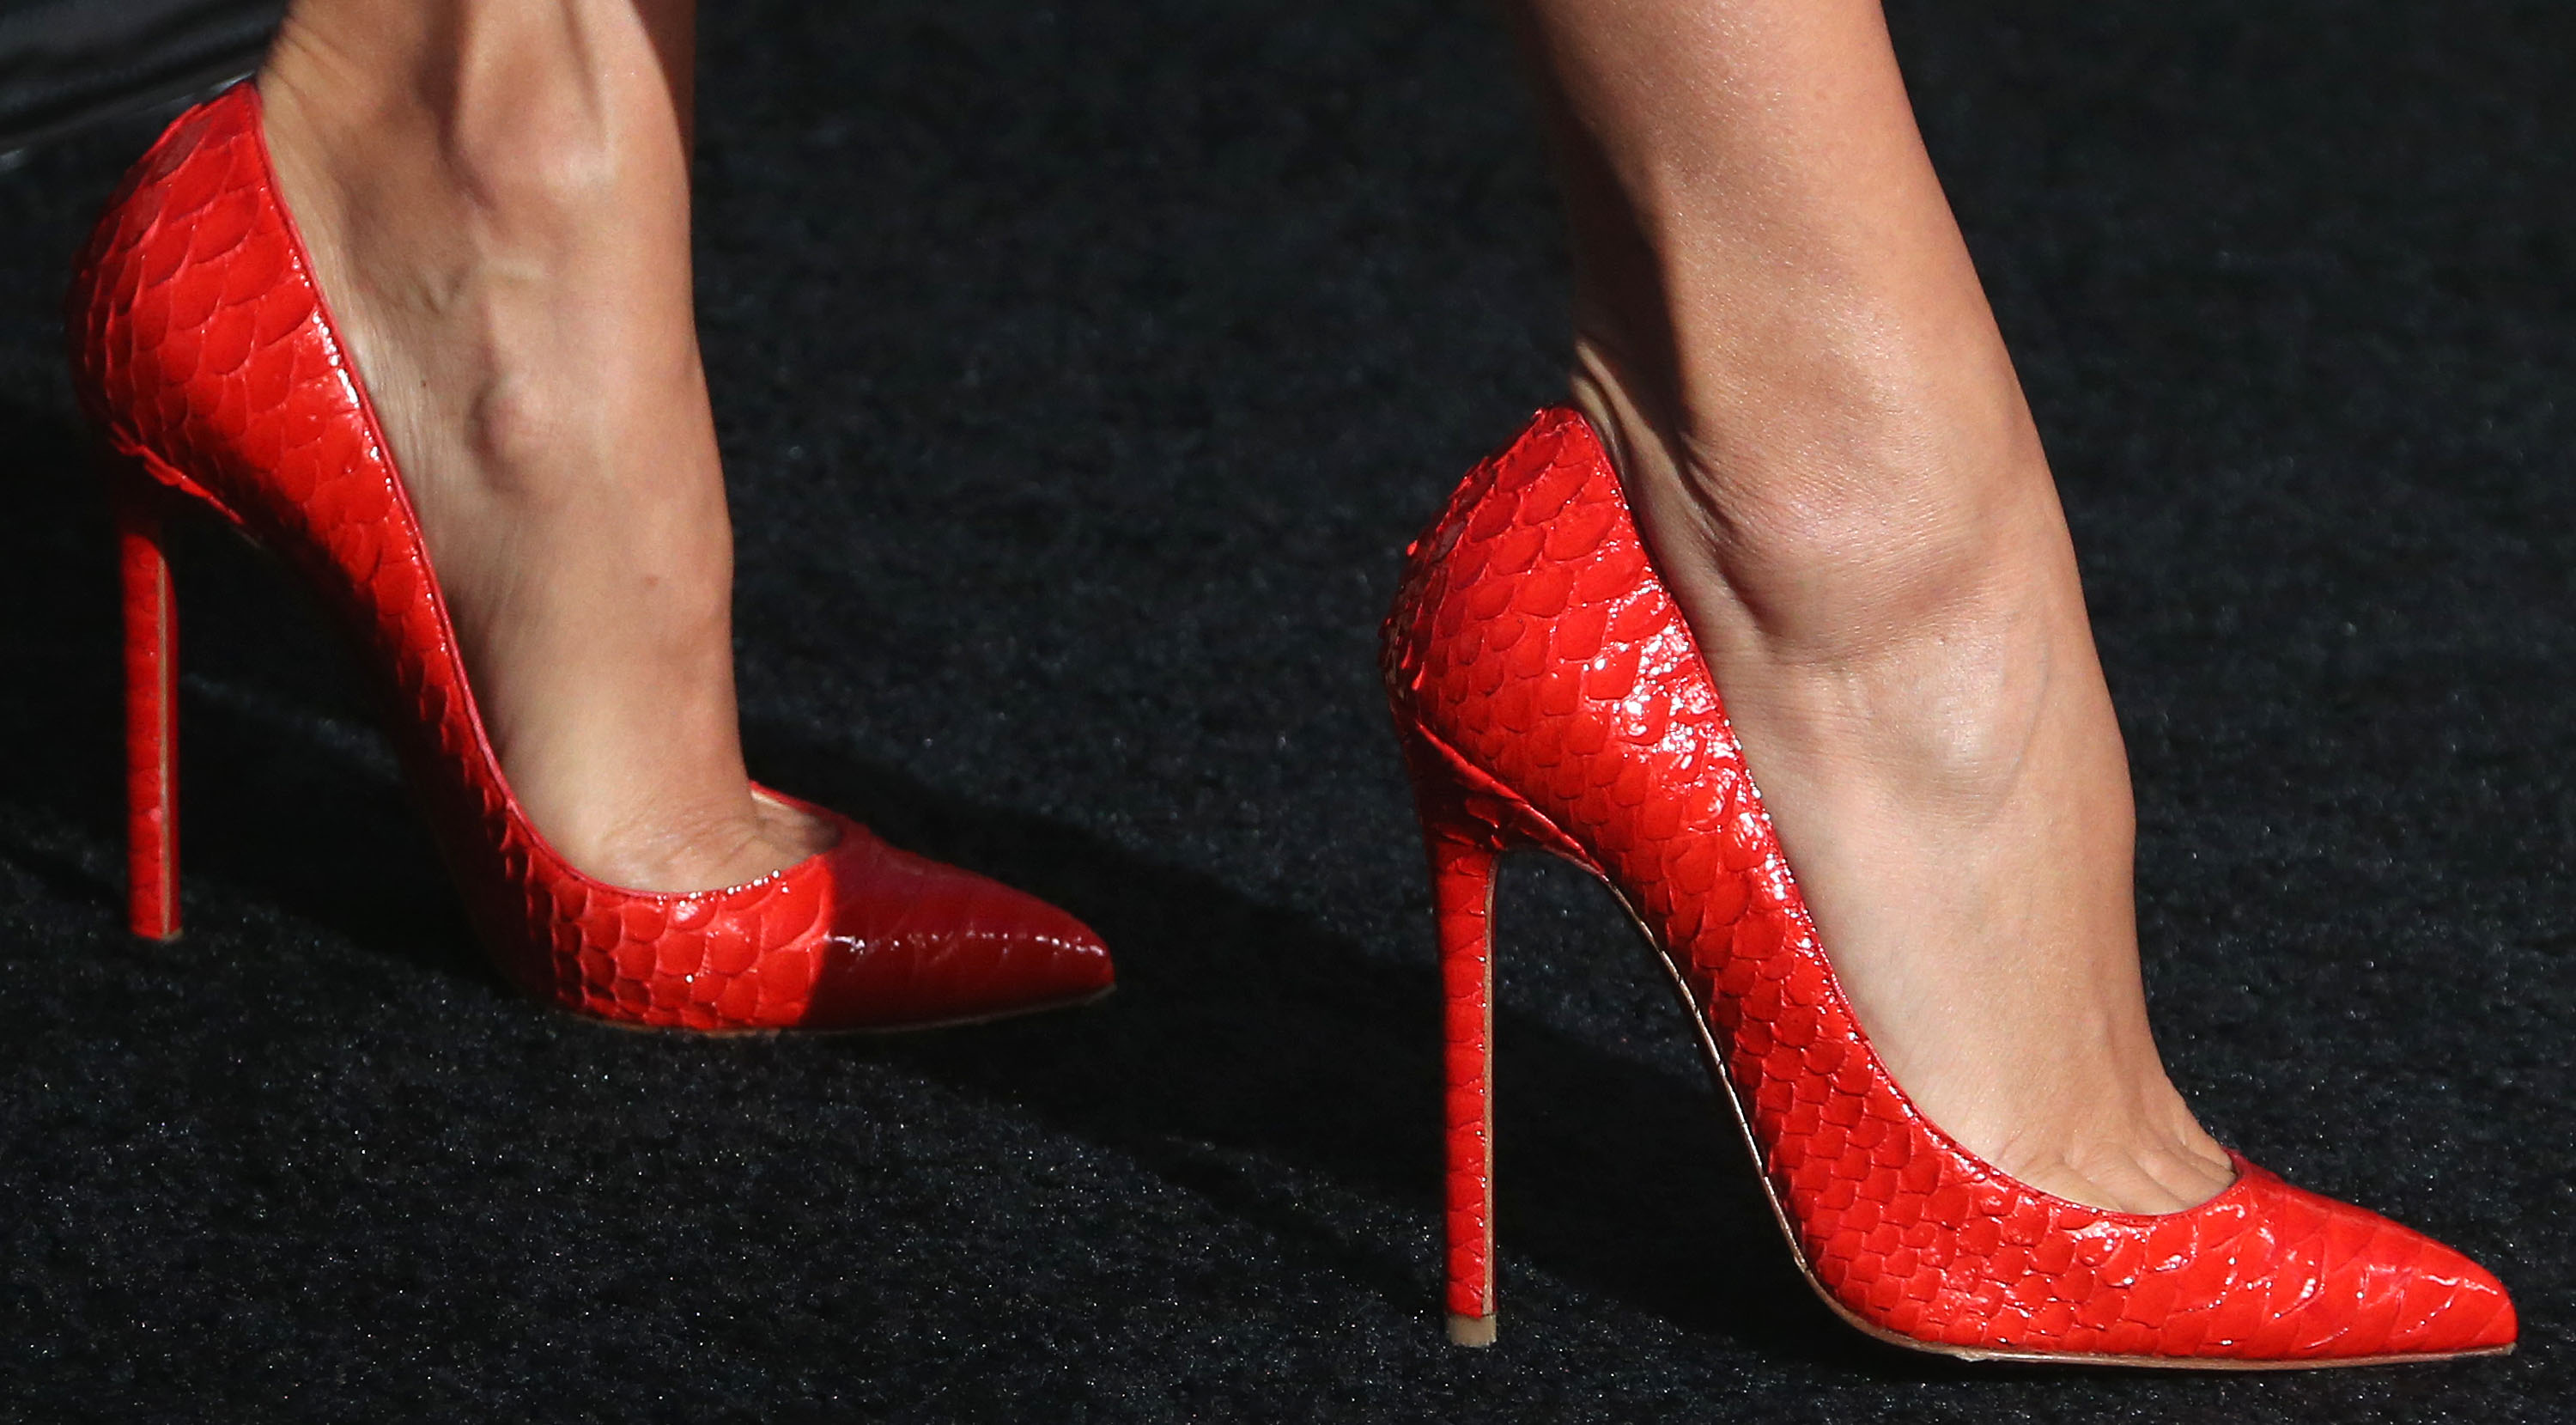 9a63b216b1db The Most Popular Shoes By Country Might Surprise You